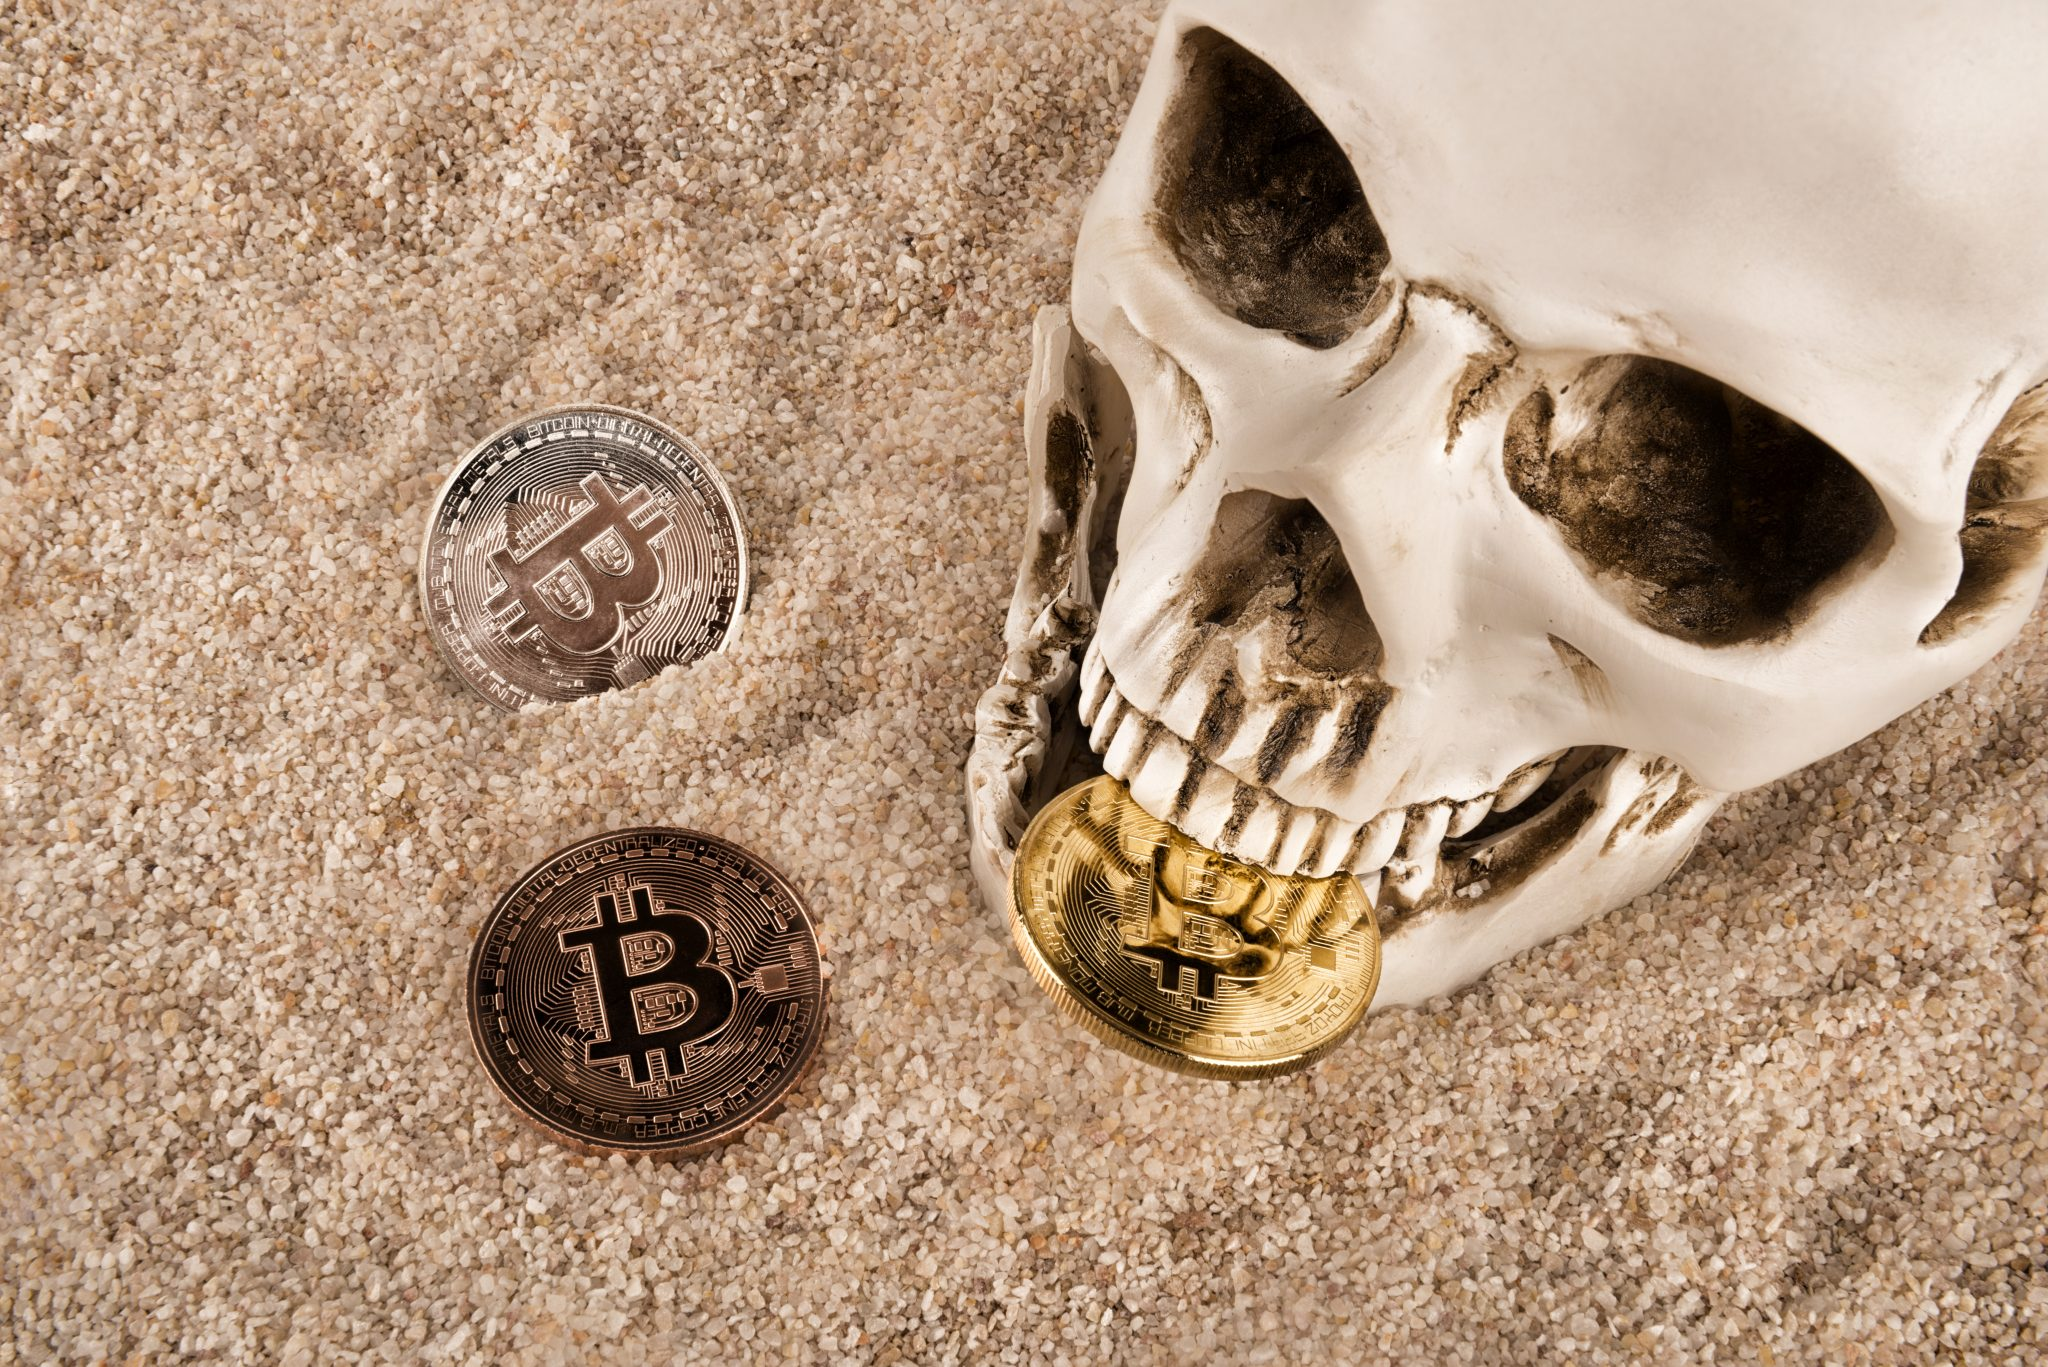 Close up on skull biting bitcoin over sand background. Concept of investment and fluctuation of bitcoin and cryptocurrency.